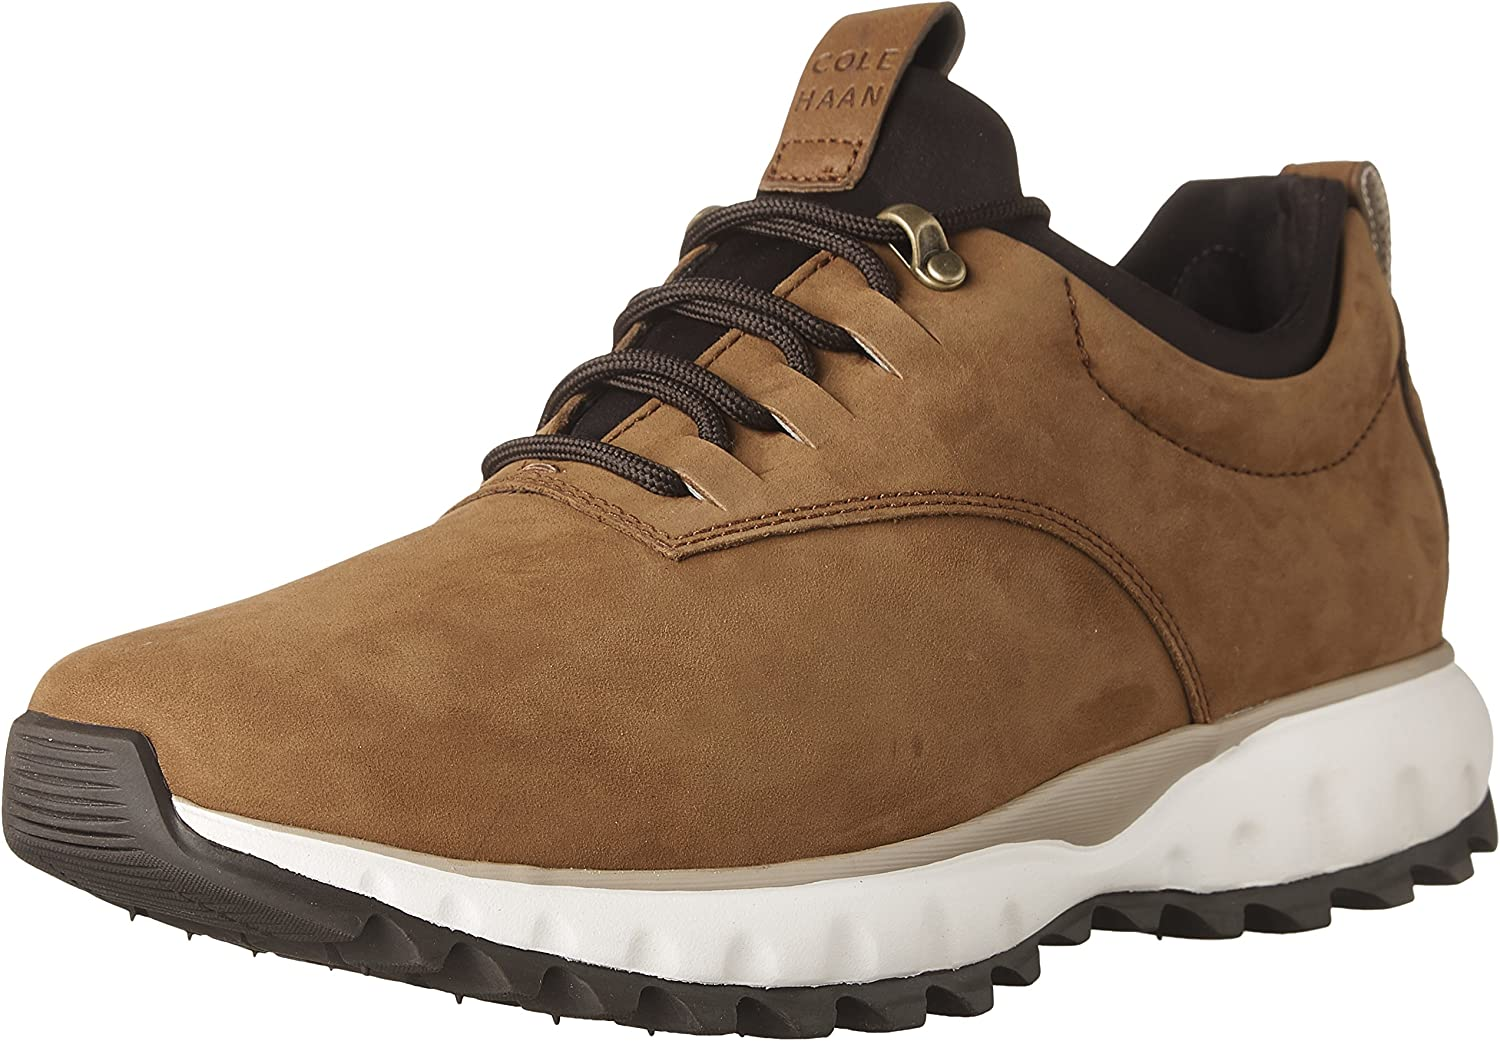 Cole Haan Mens Grand Explore All Terrain Sneaker Sneakers